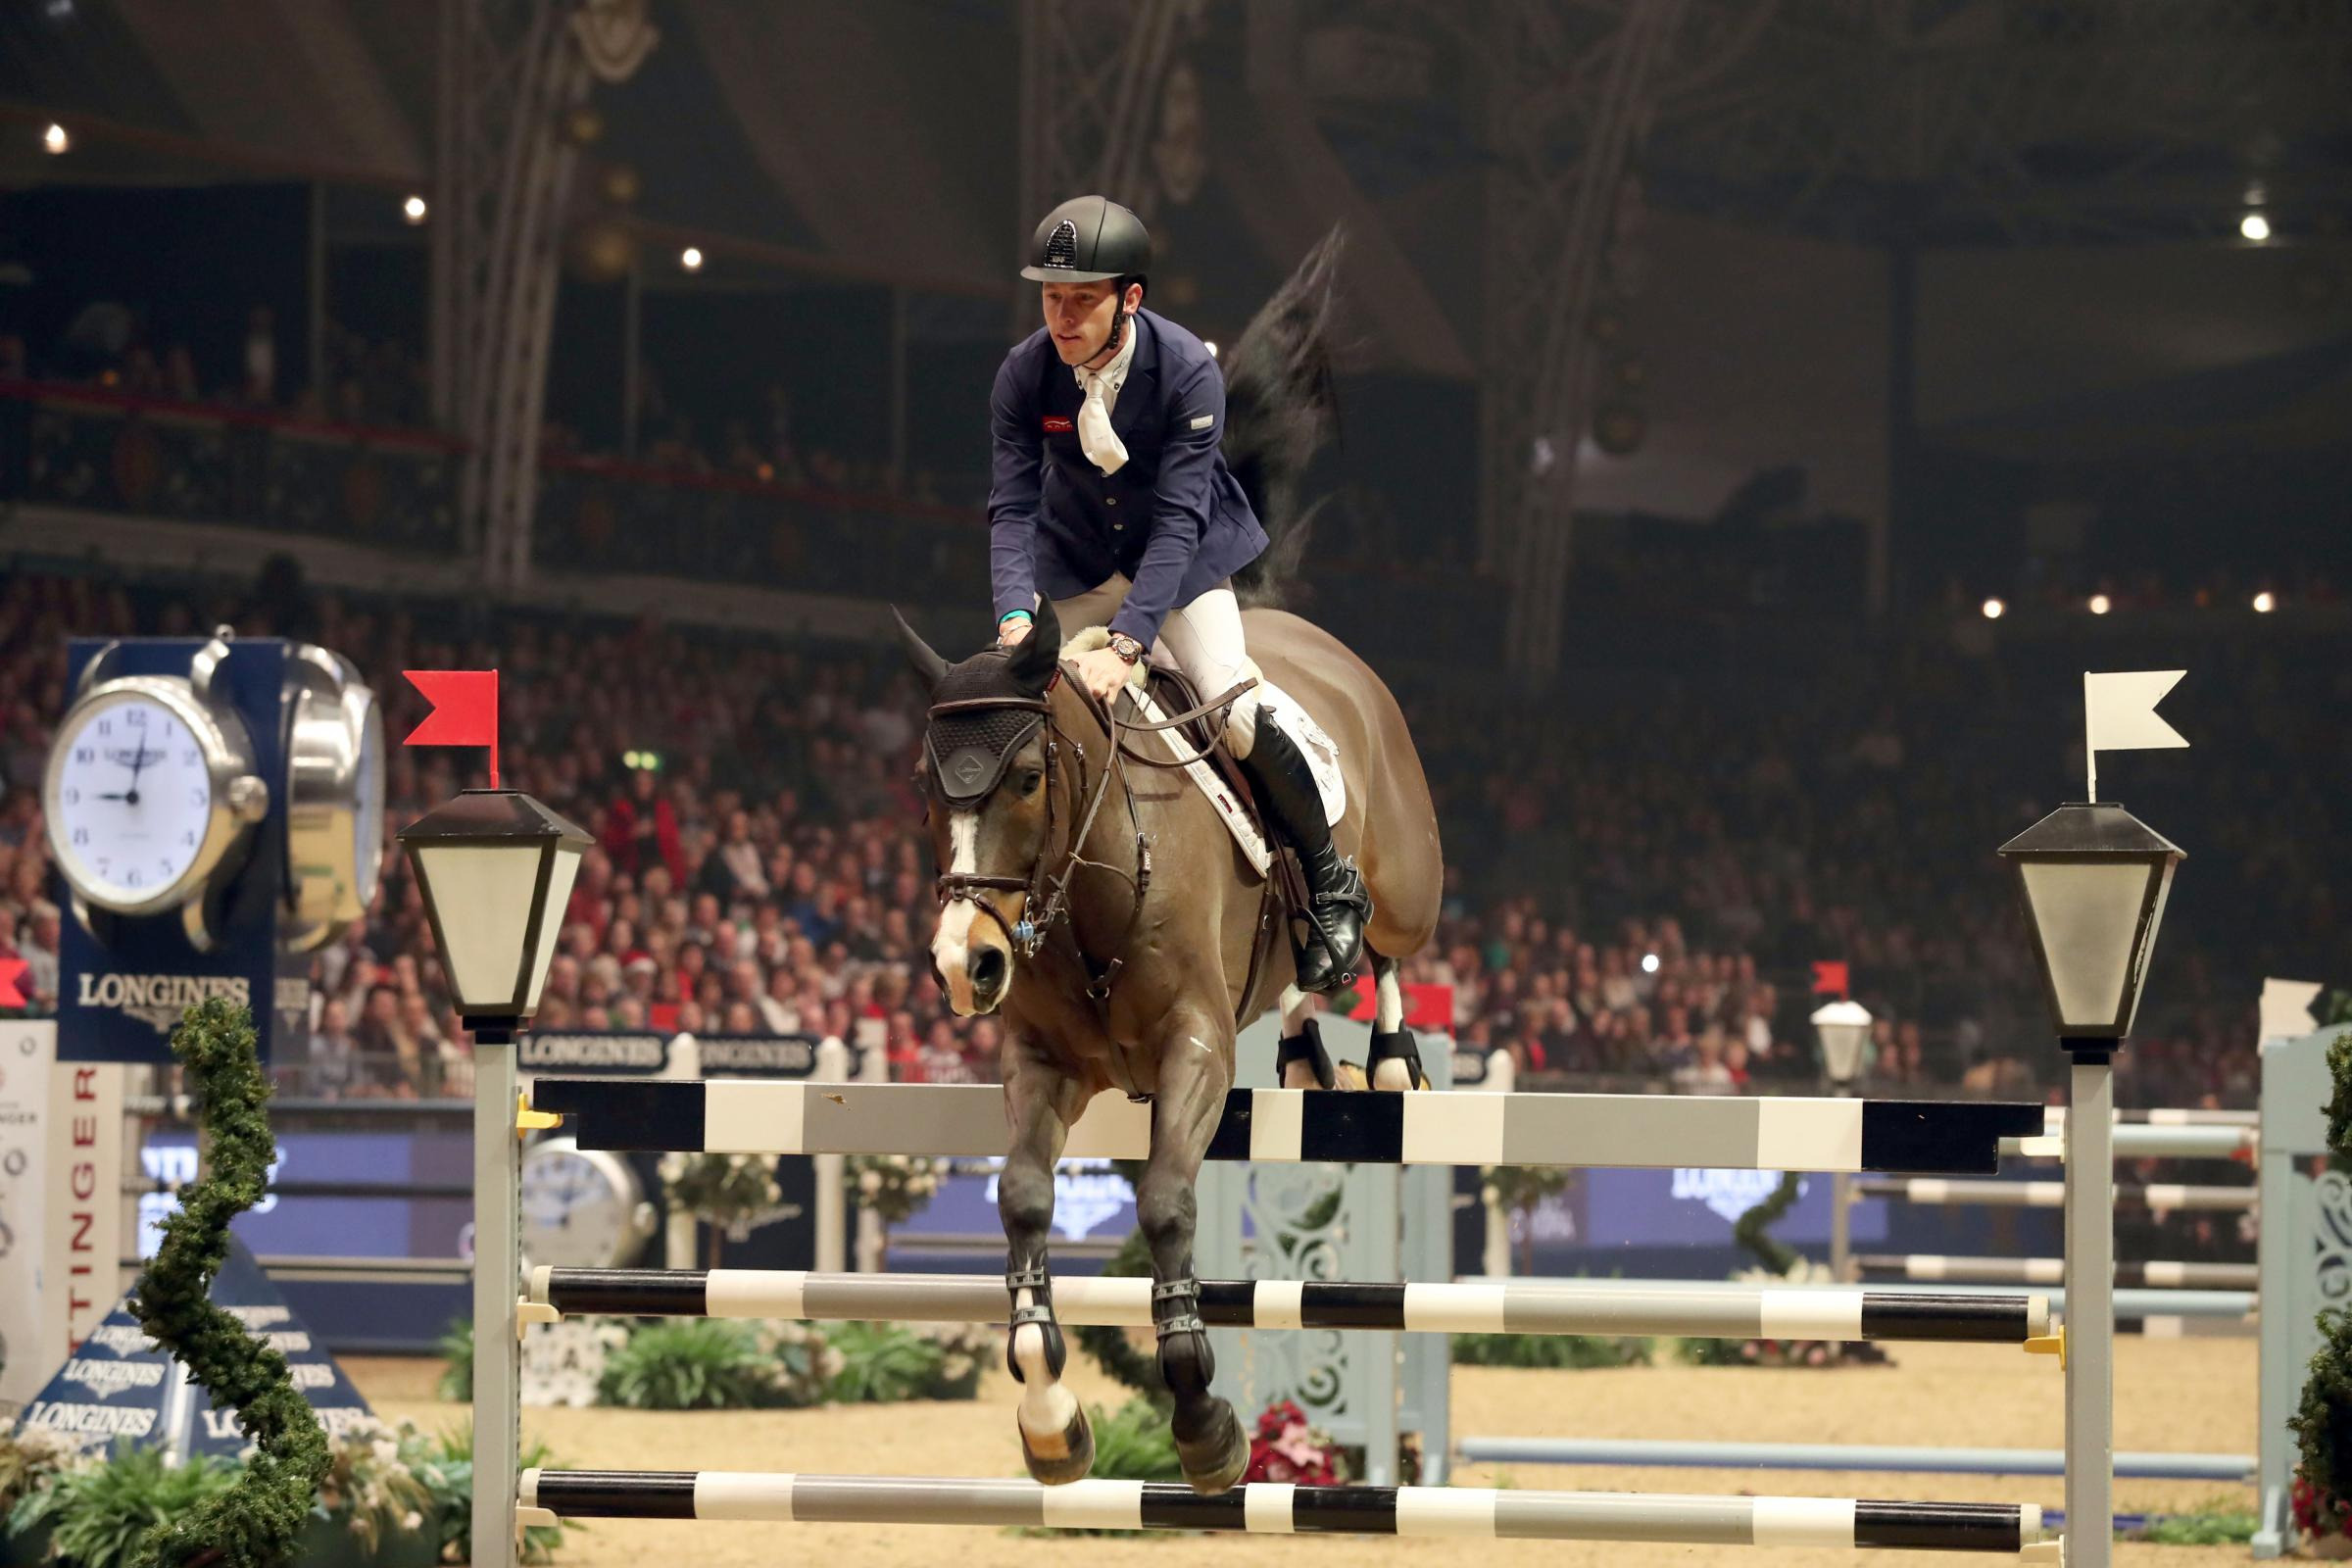 Scott Brash riding Hello Shelby competes in the Christmas Cracker at the London International Horse Show at Olympia. Photo: Steve Parsons/PA Wire.